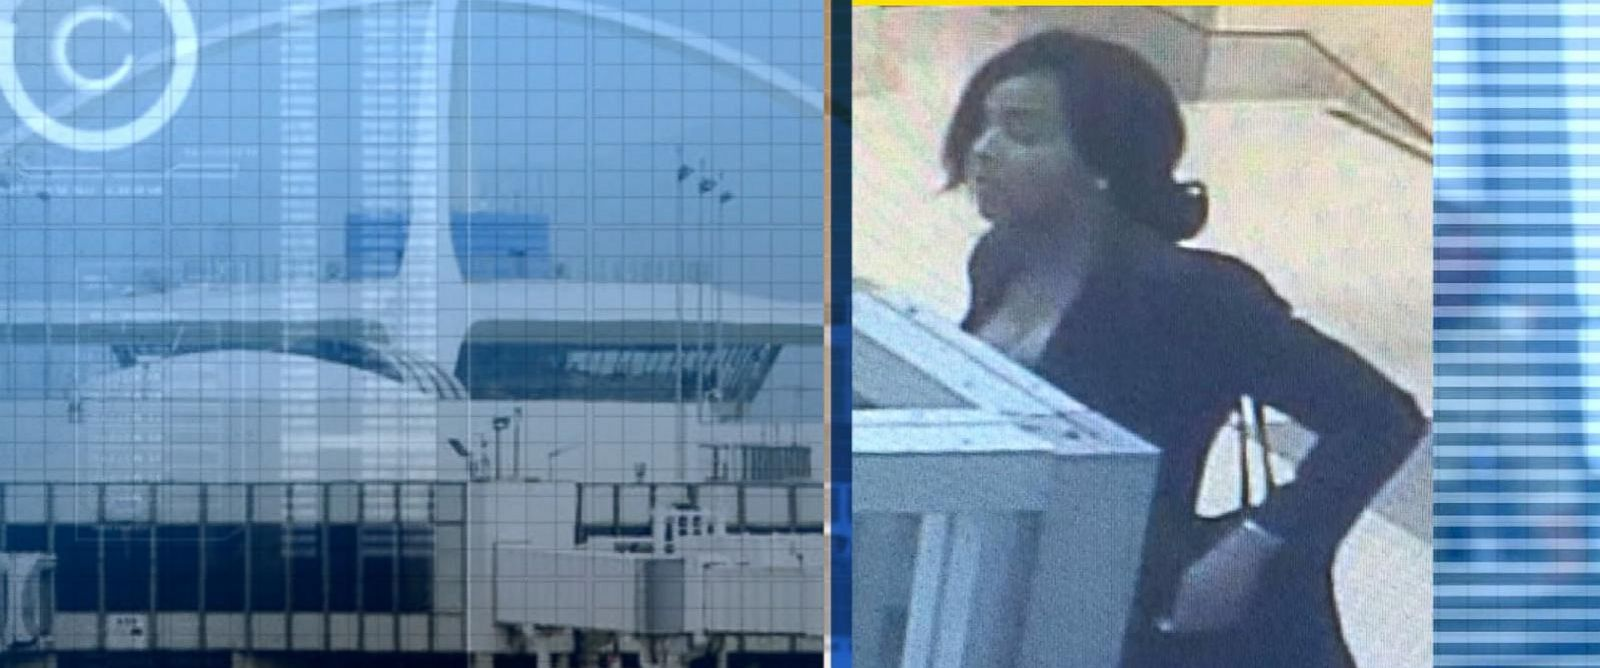 PHOTO: Marsha Reynolds, 31, was released from a New York jail Friday on $500,000 bond after she allegedly tried to smuggle nearly 70 pounds of cocaine through the LAX airport on March 18, 2016.